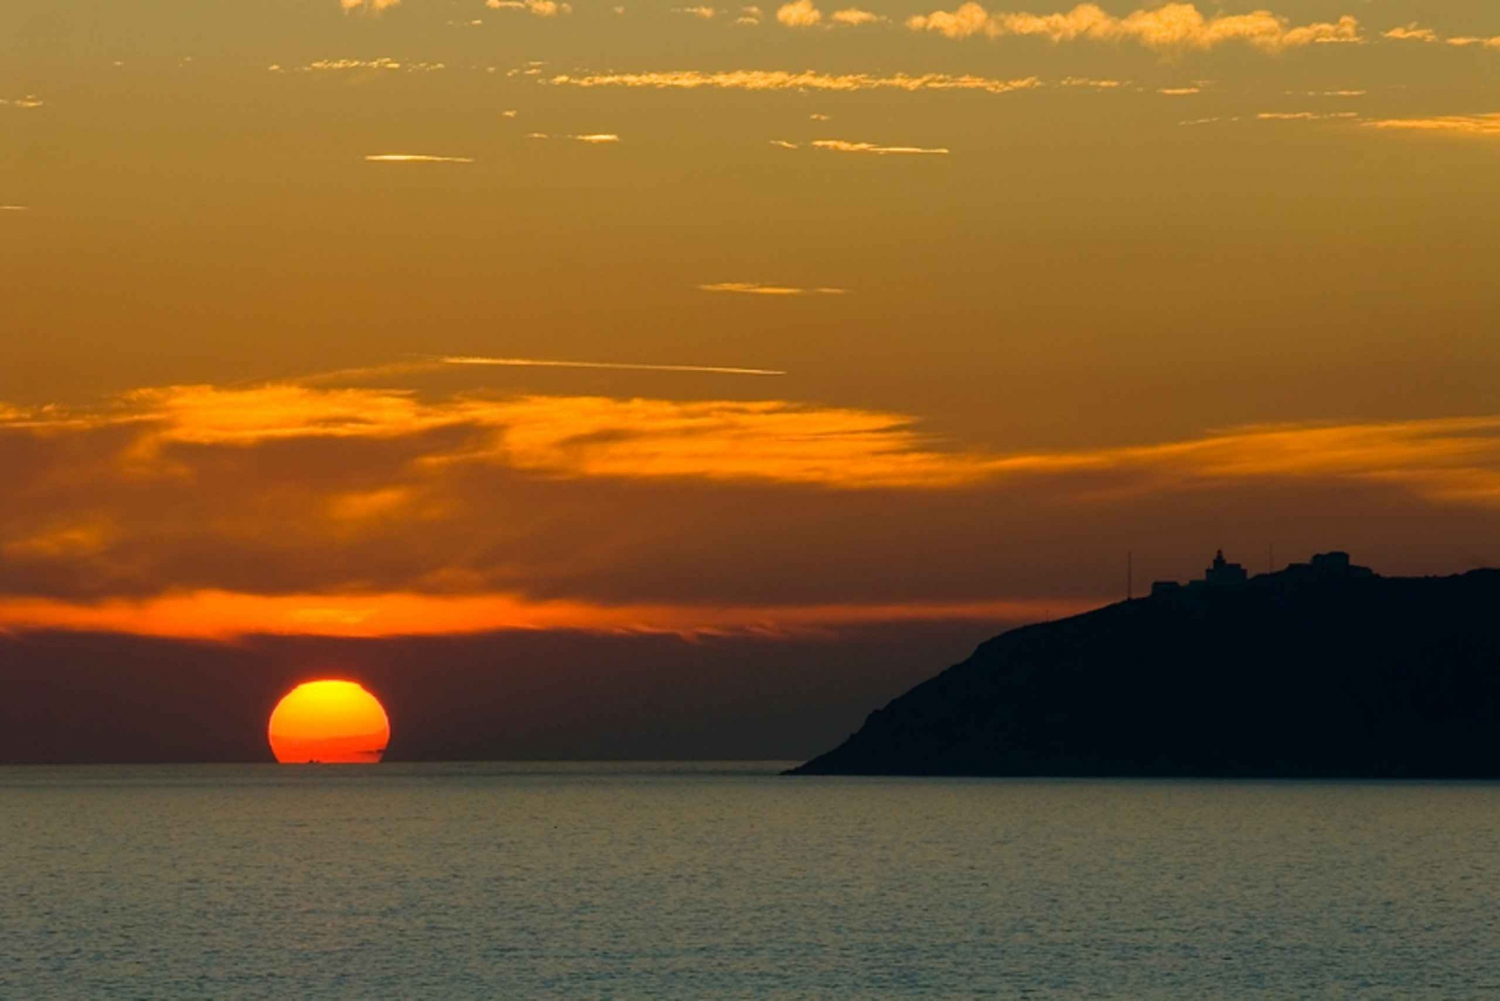 Finisterre, Muxía and Coast of Death: Sunset Tour